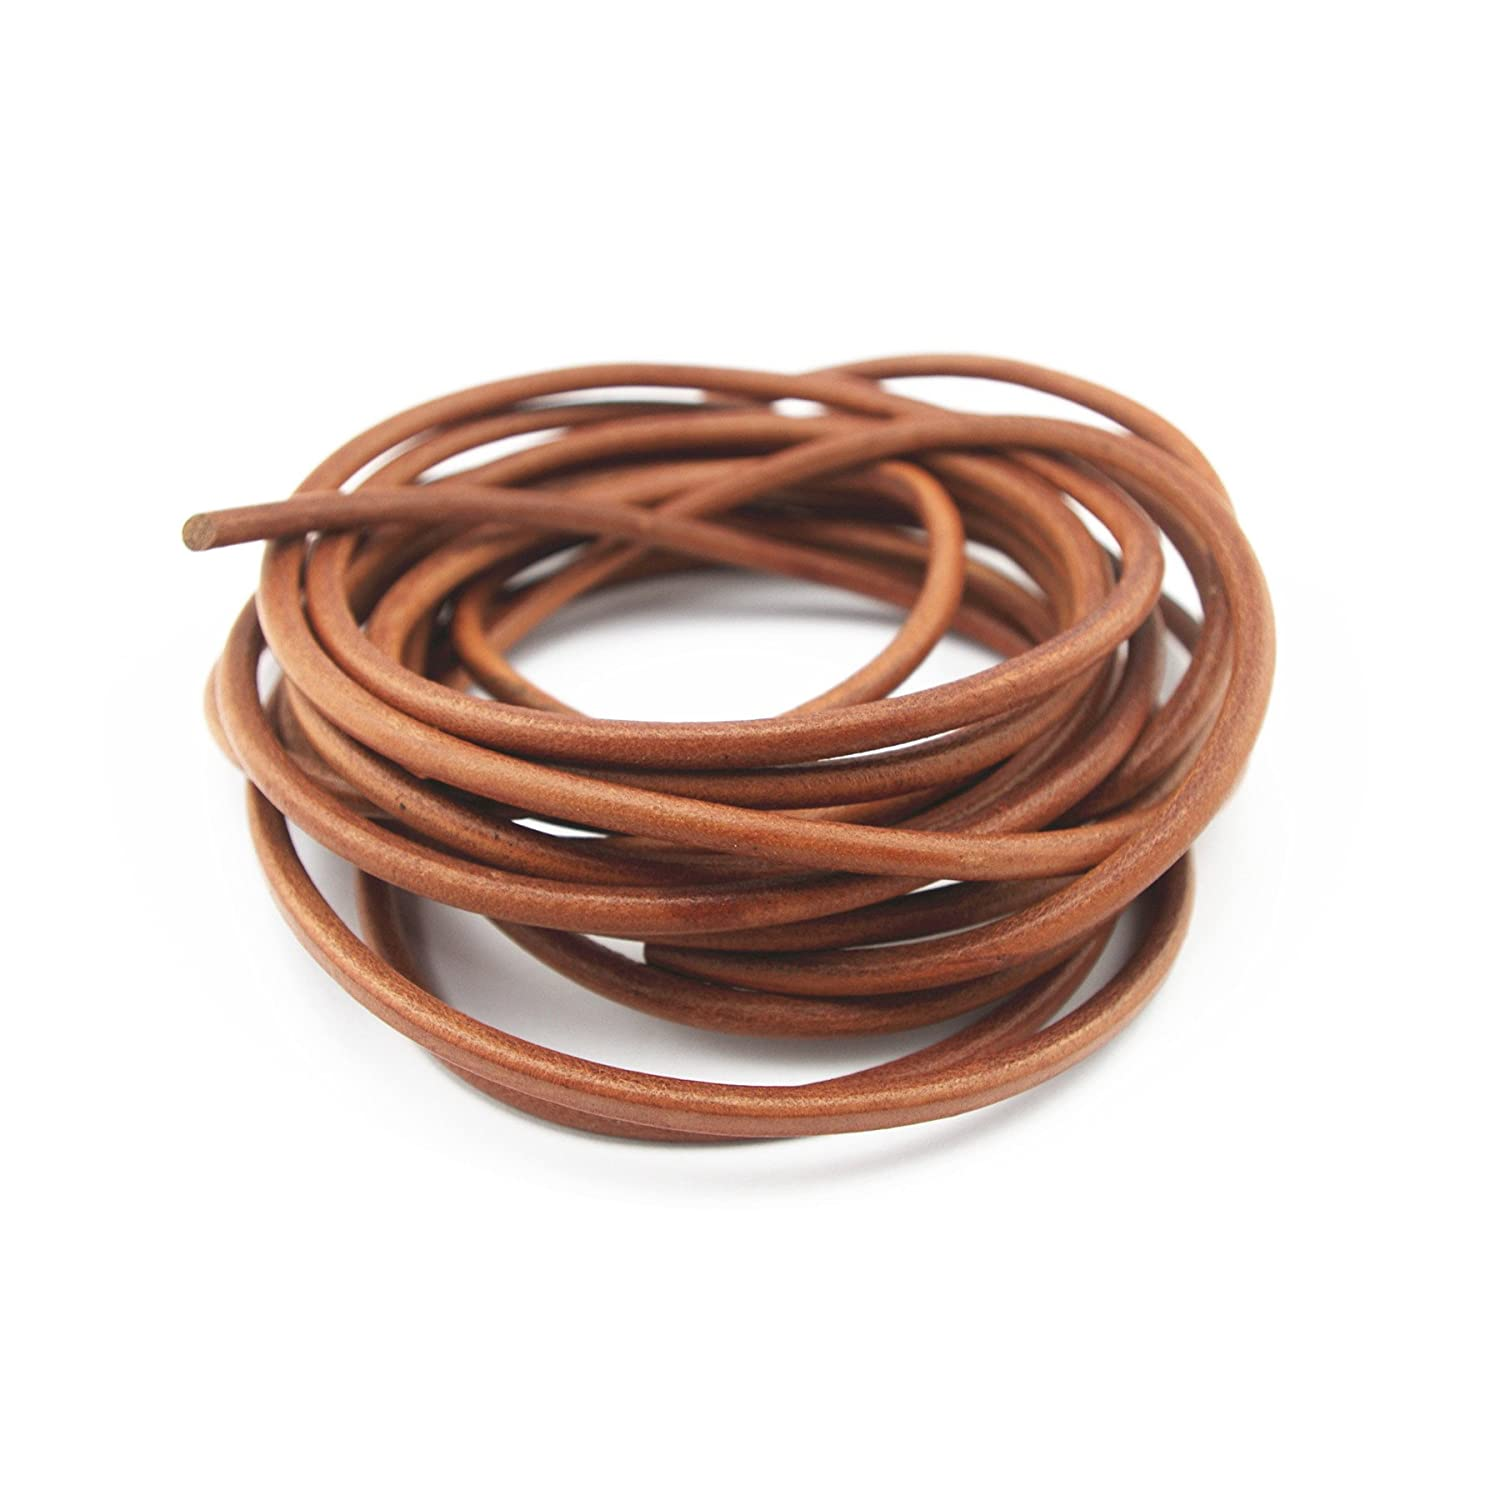 Glory Qin Distressed Brown Color Soft Round Genuine Jewelry Leather Cord Leather Rope 2mm 20 Yards